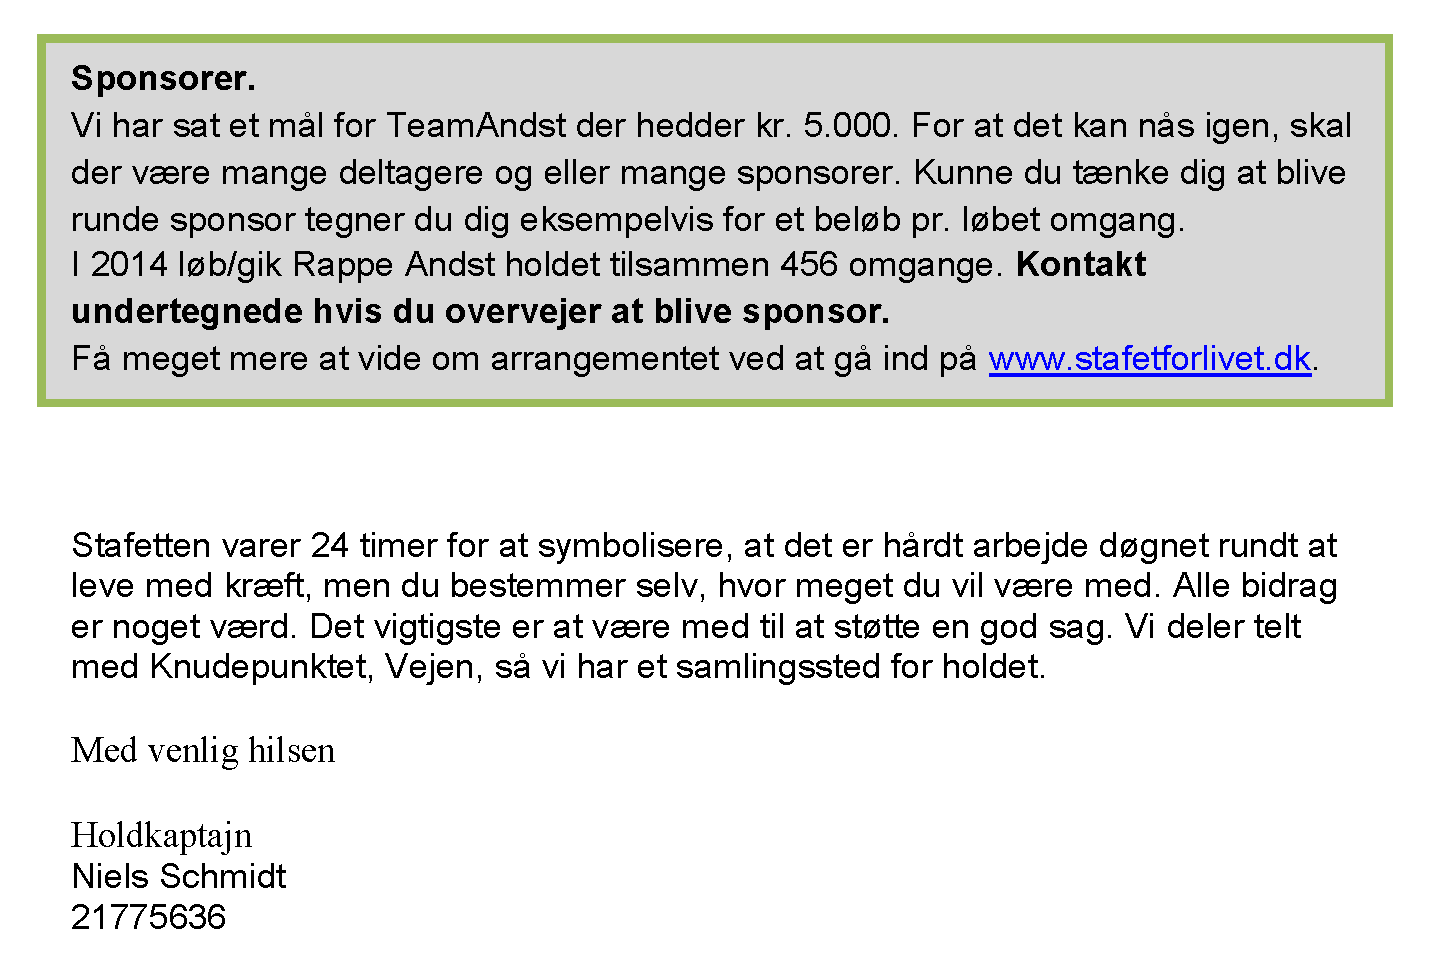 PRESSEMEDDELELSE Onsdag den 9. september kl. 19.00 kommer Niels Kristian Sørensen fra Mission Aviation Fellowship (MAF) og holder foredrag i Andst Kirke.